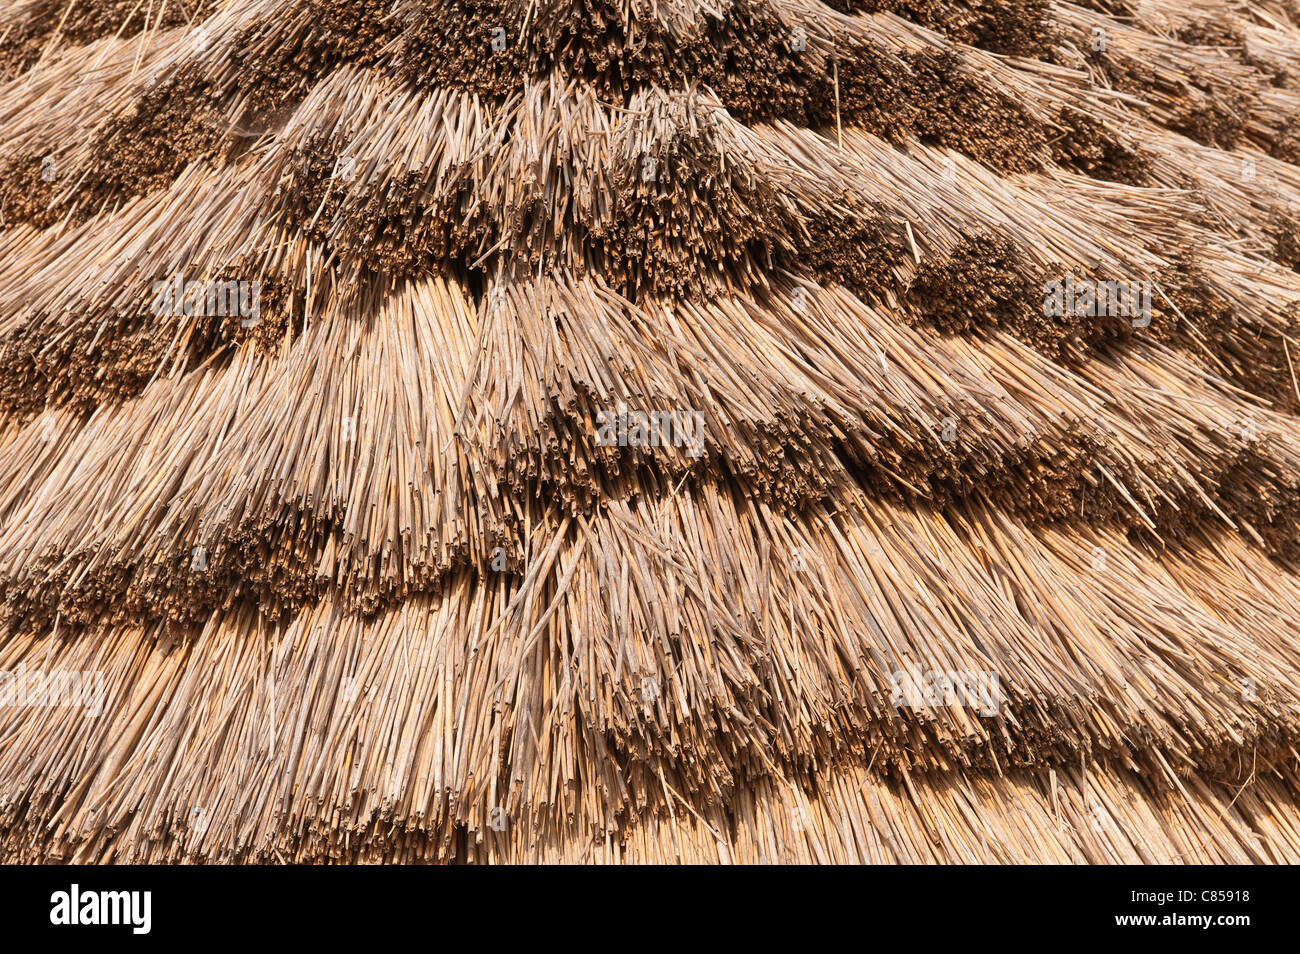 Thatched Roof And Bronze Age Style Dwelling With Timber